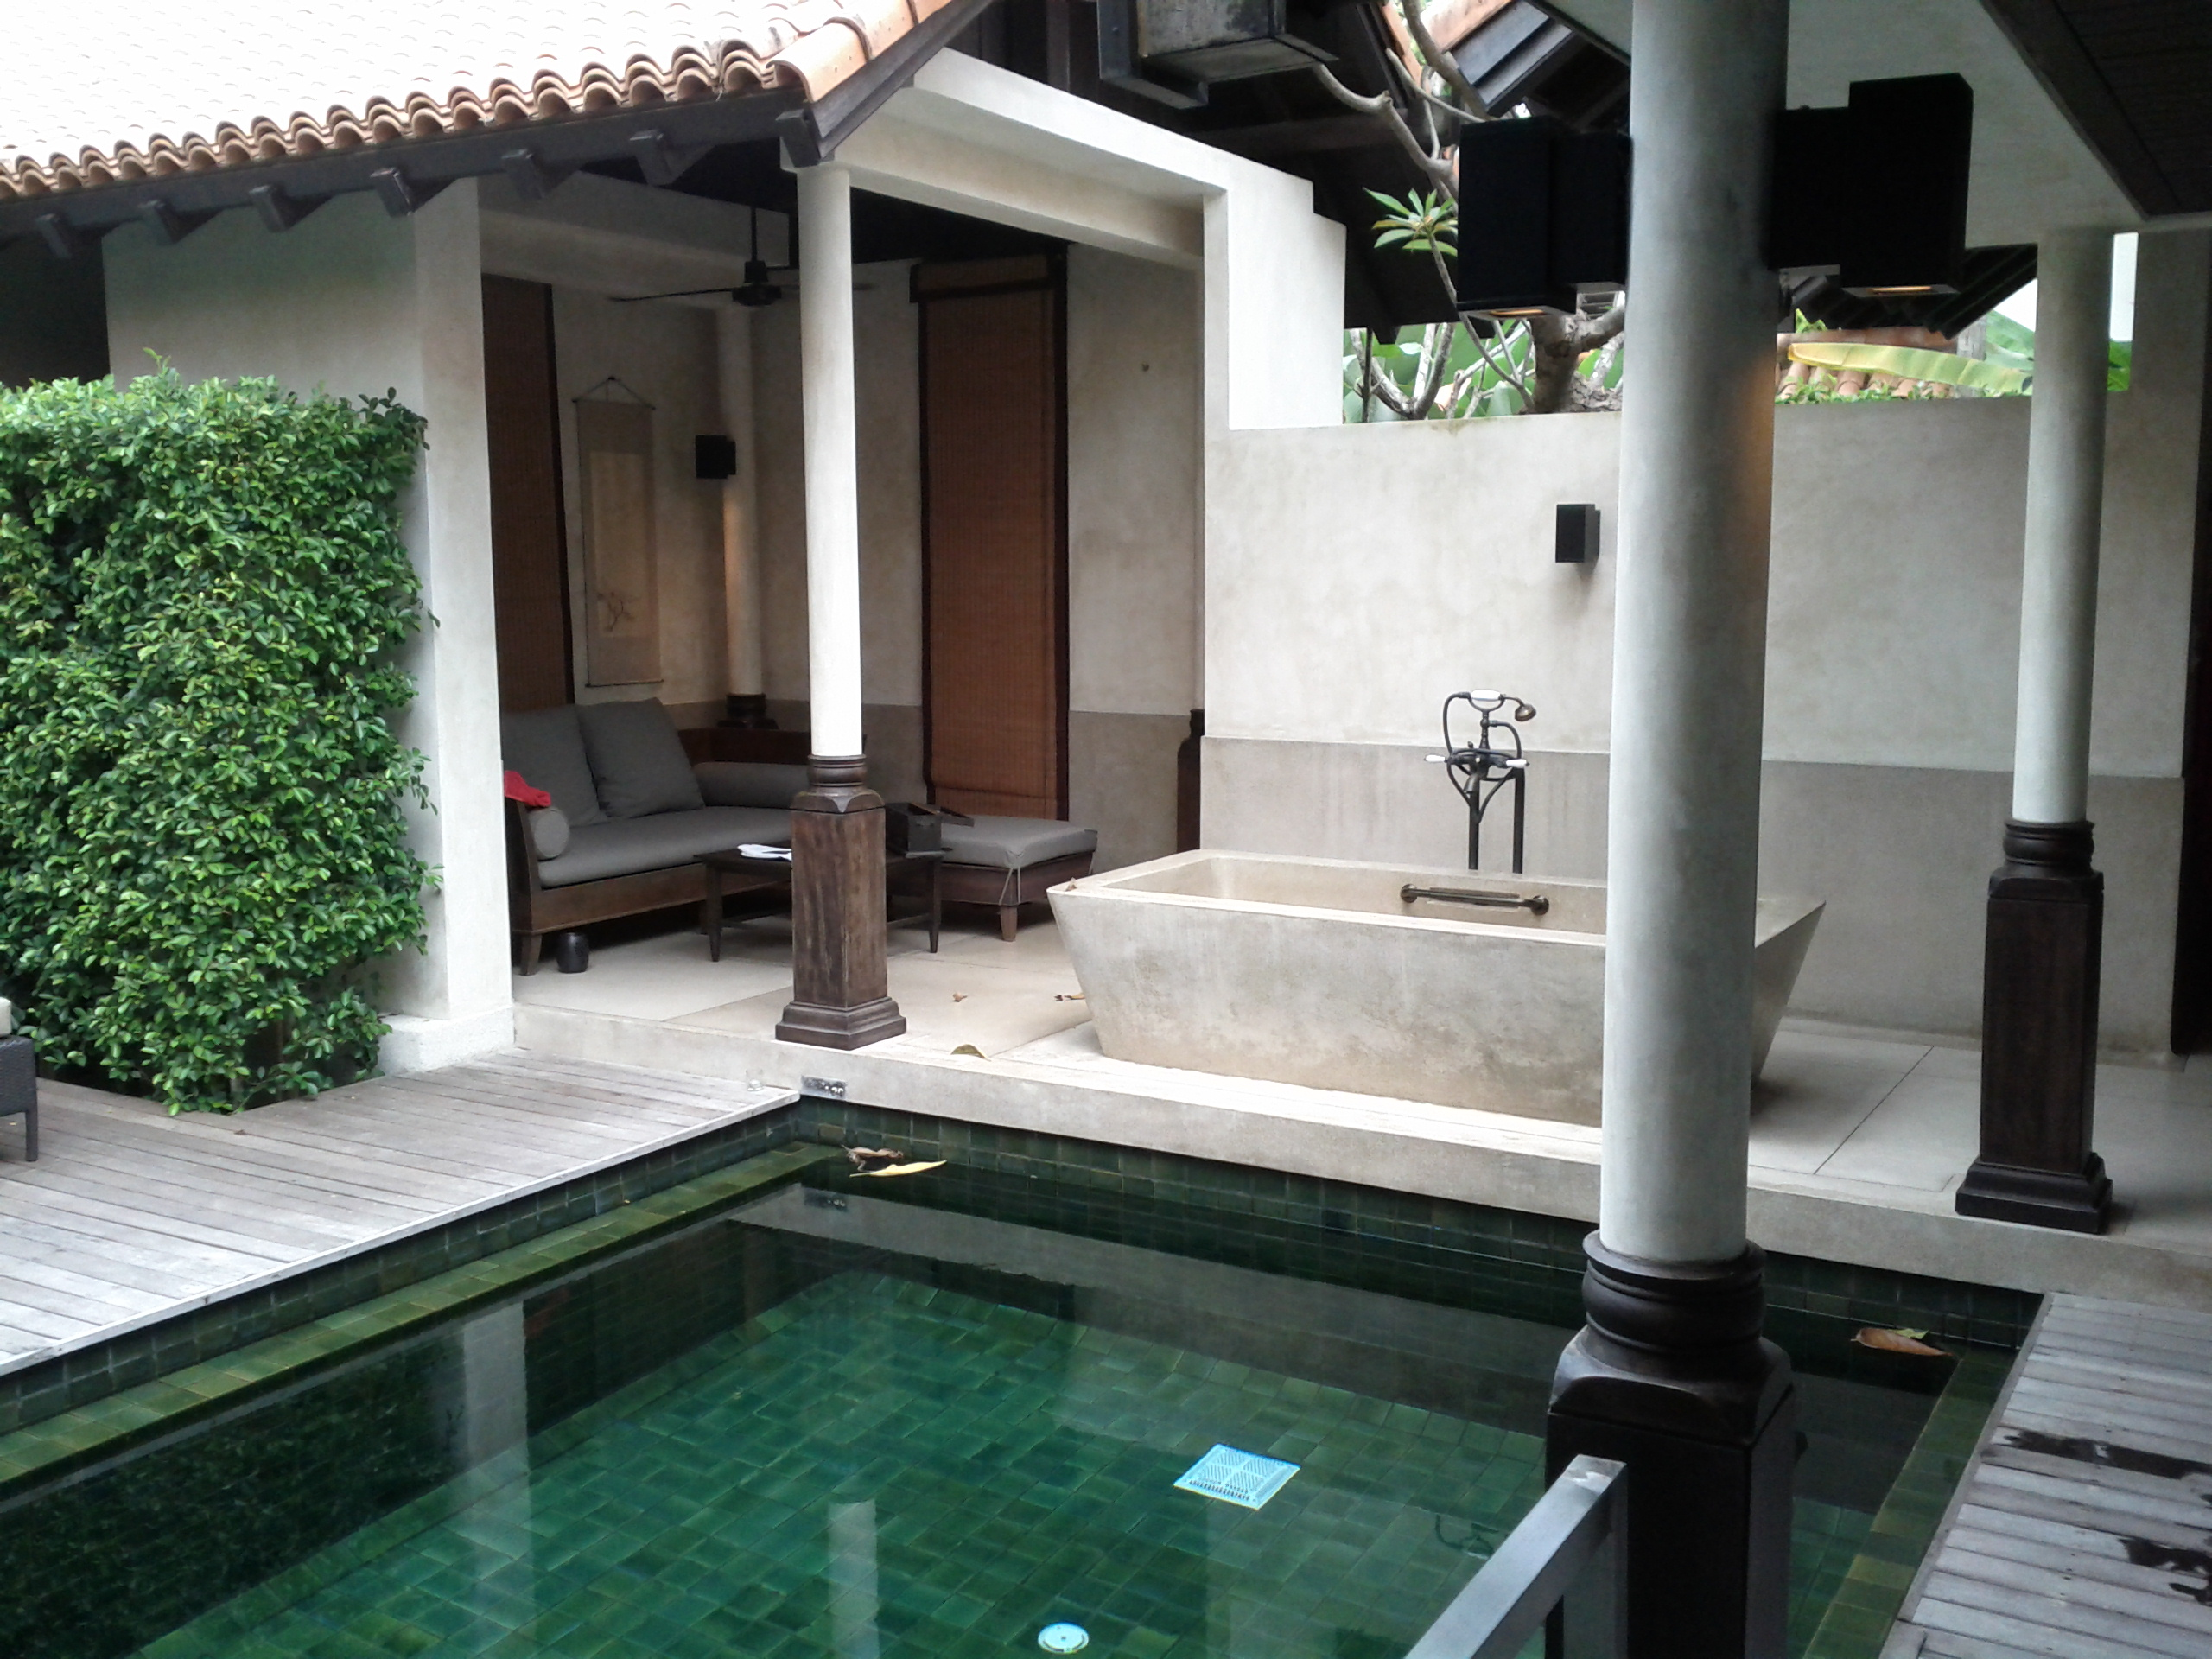 Le meridien koh samui resort and spa koh samui thailand for Koi pool villa koh tao